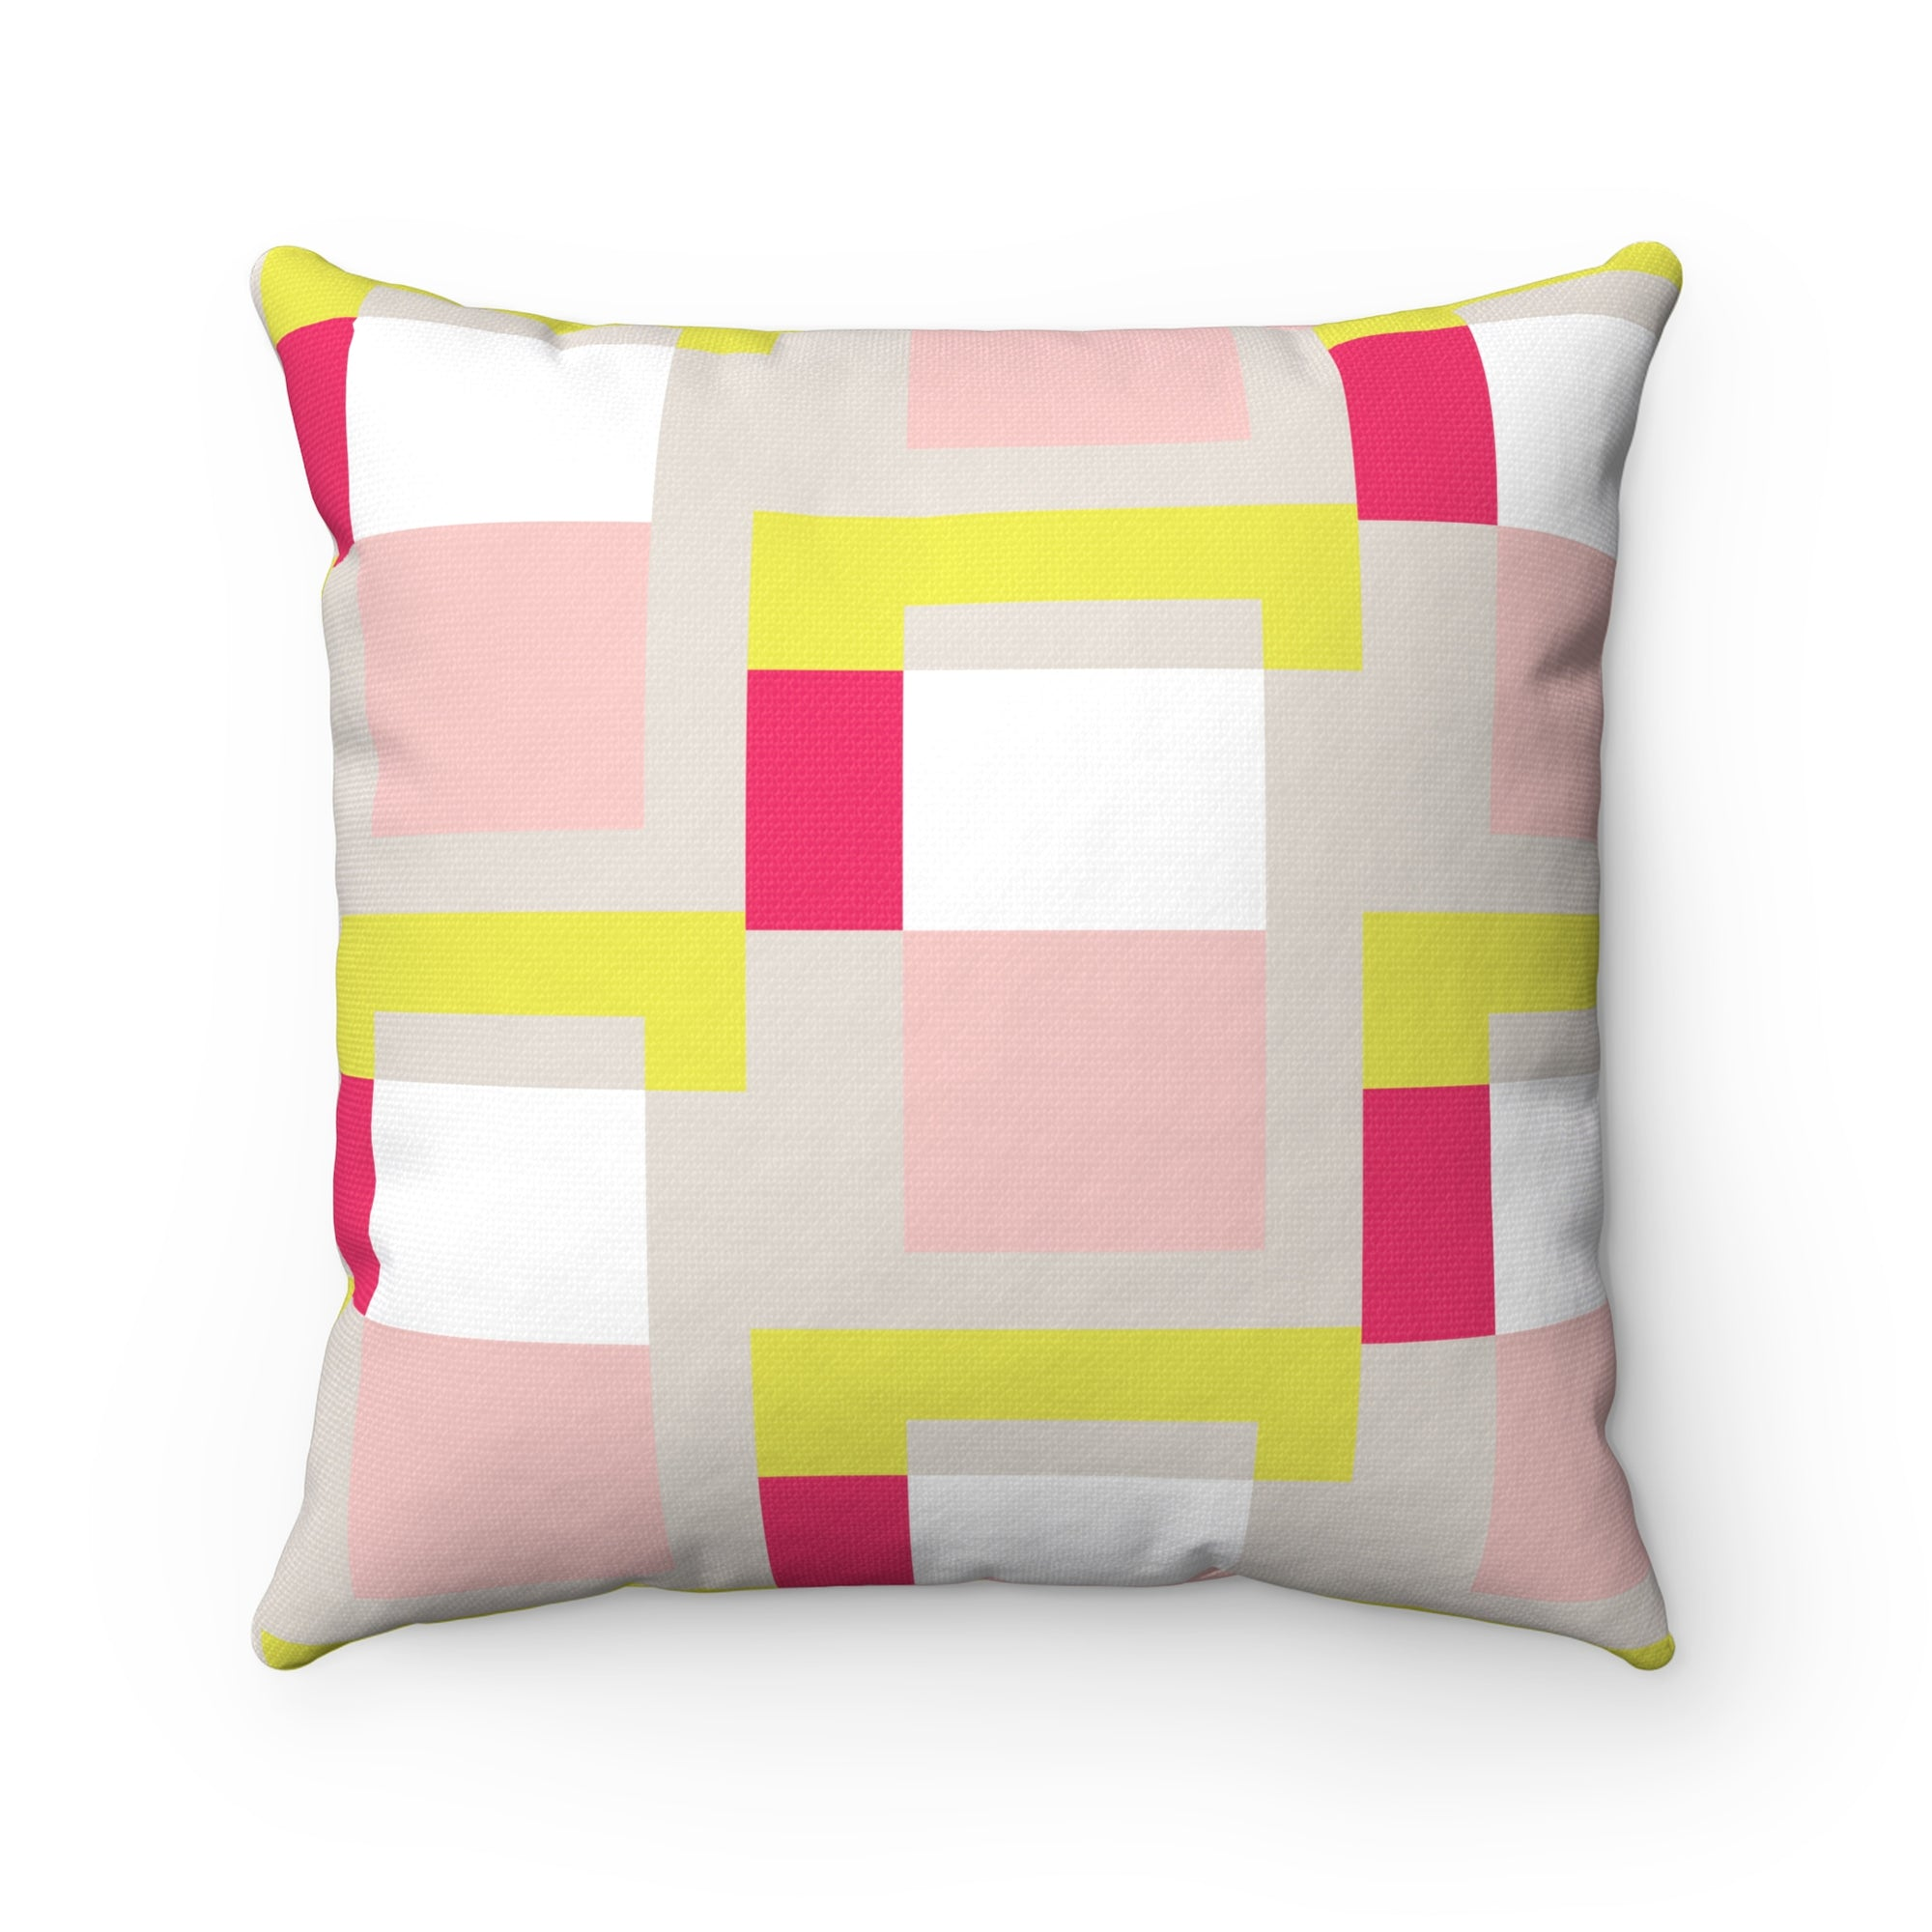 etsy by pillow pattern miauss square red white geometric pin decorative on case